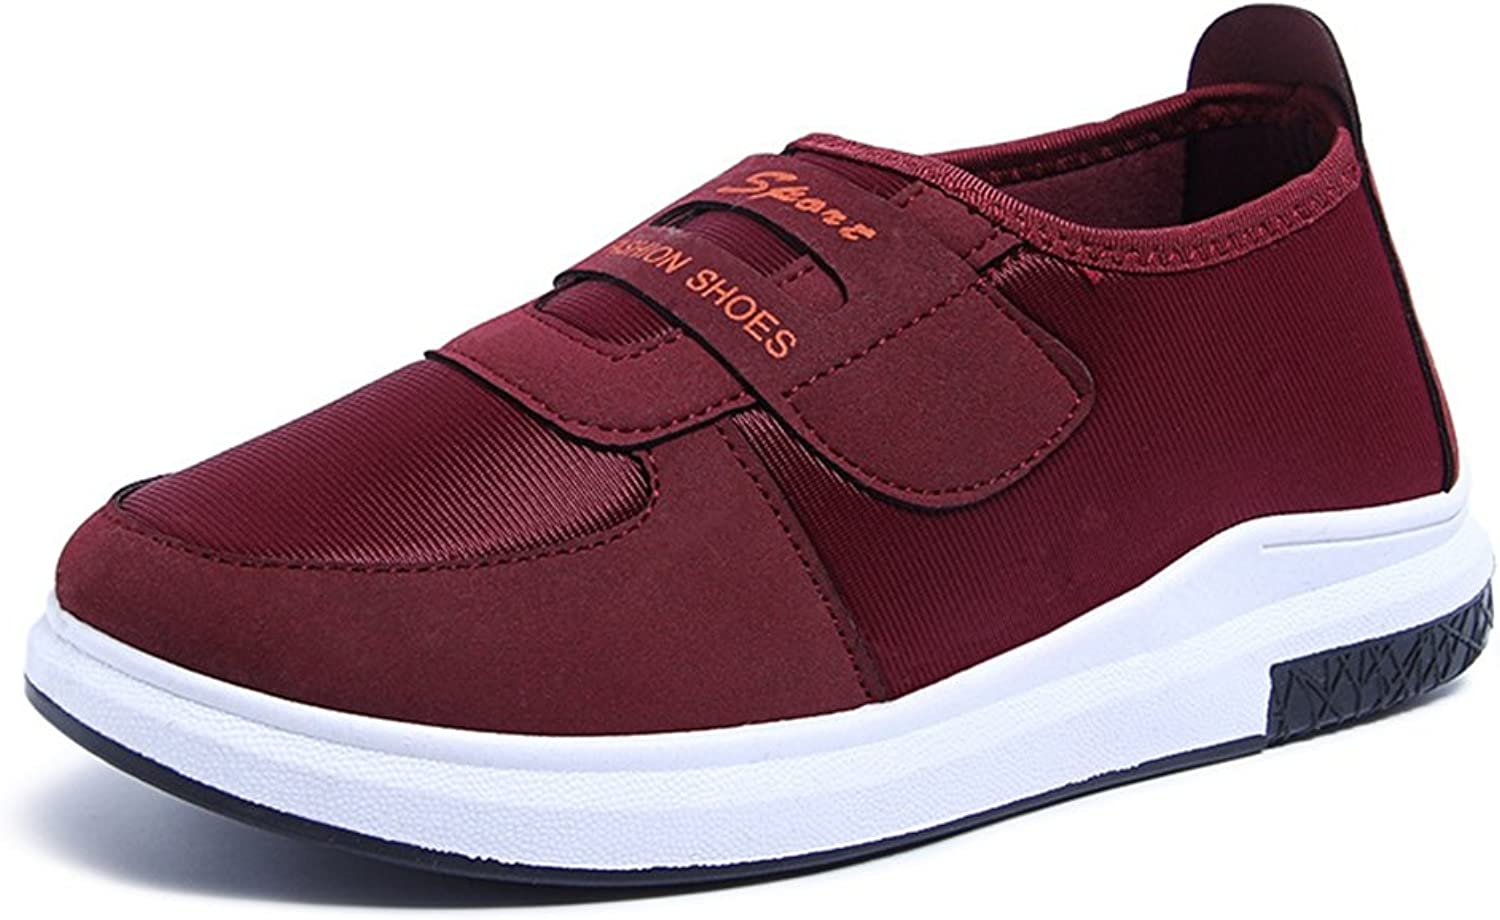 CYBLING Flat Walking shoes for Women Non Slip Casual Breathable Comfortable Sneakers Soft Sole